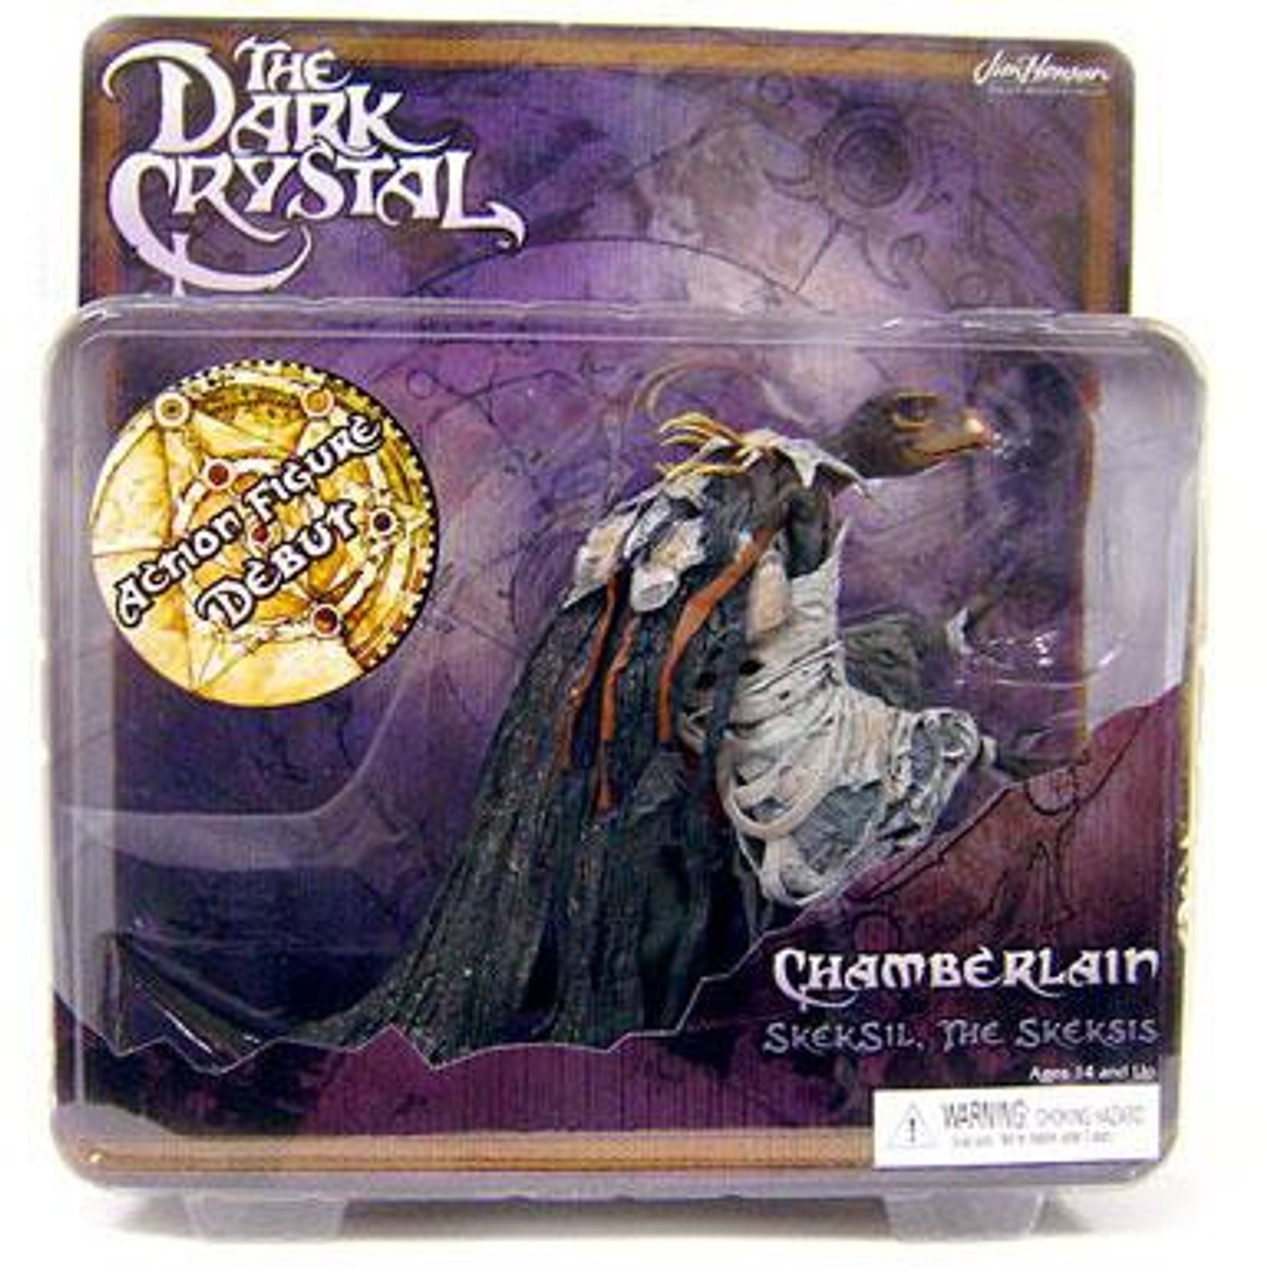 NECA The Dark Crystal Cult Classics Hall of Fame Chamberlain Action Figure [Skeksil, The Skeksis]